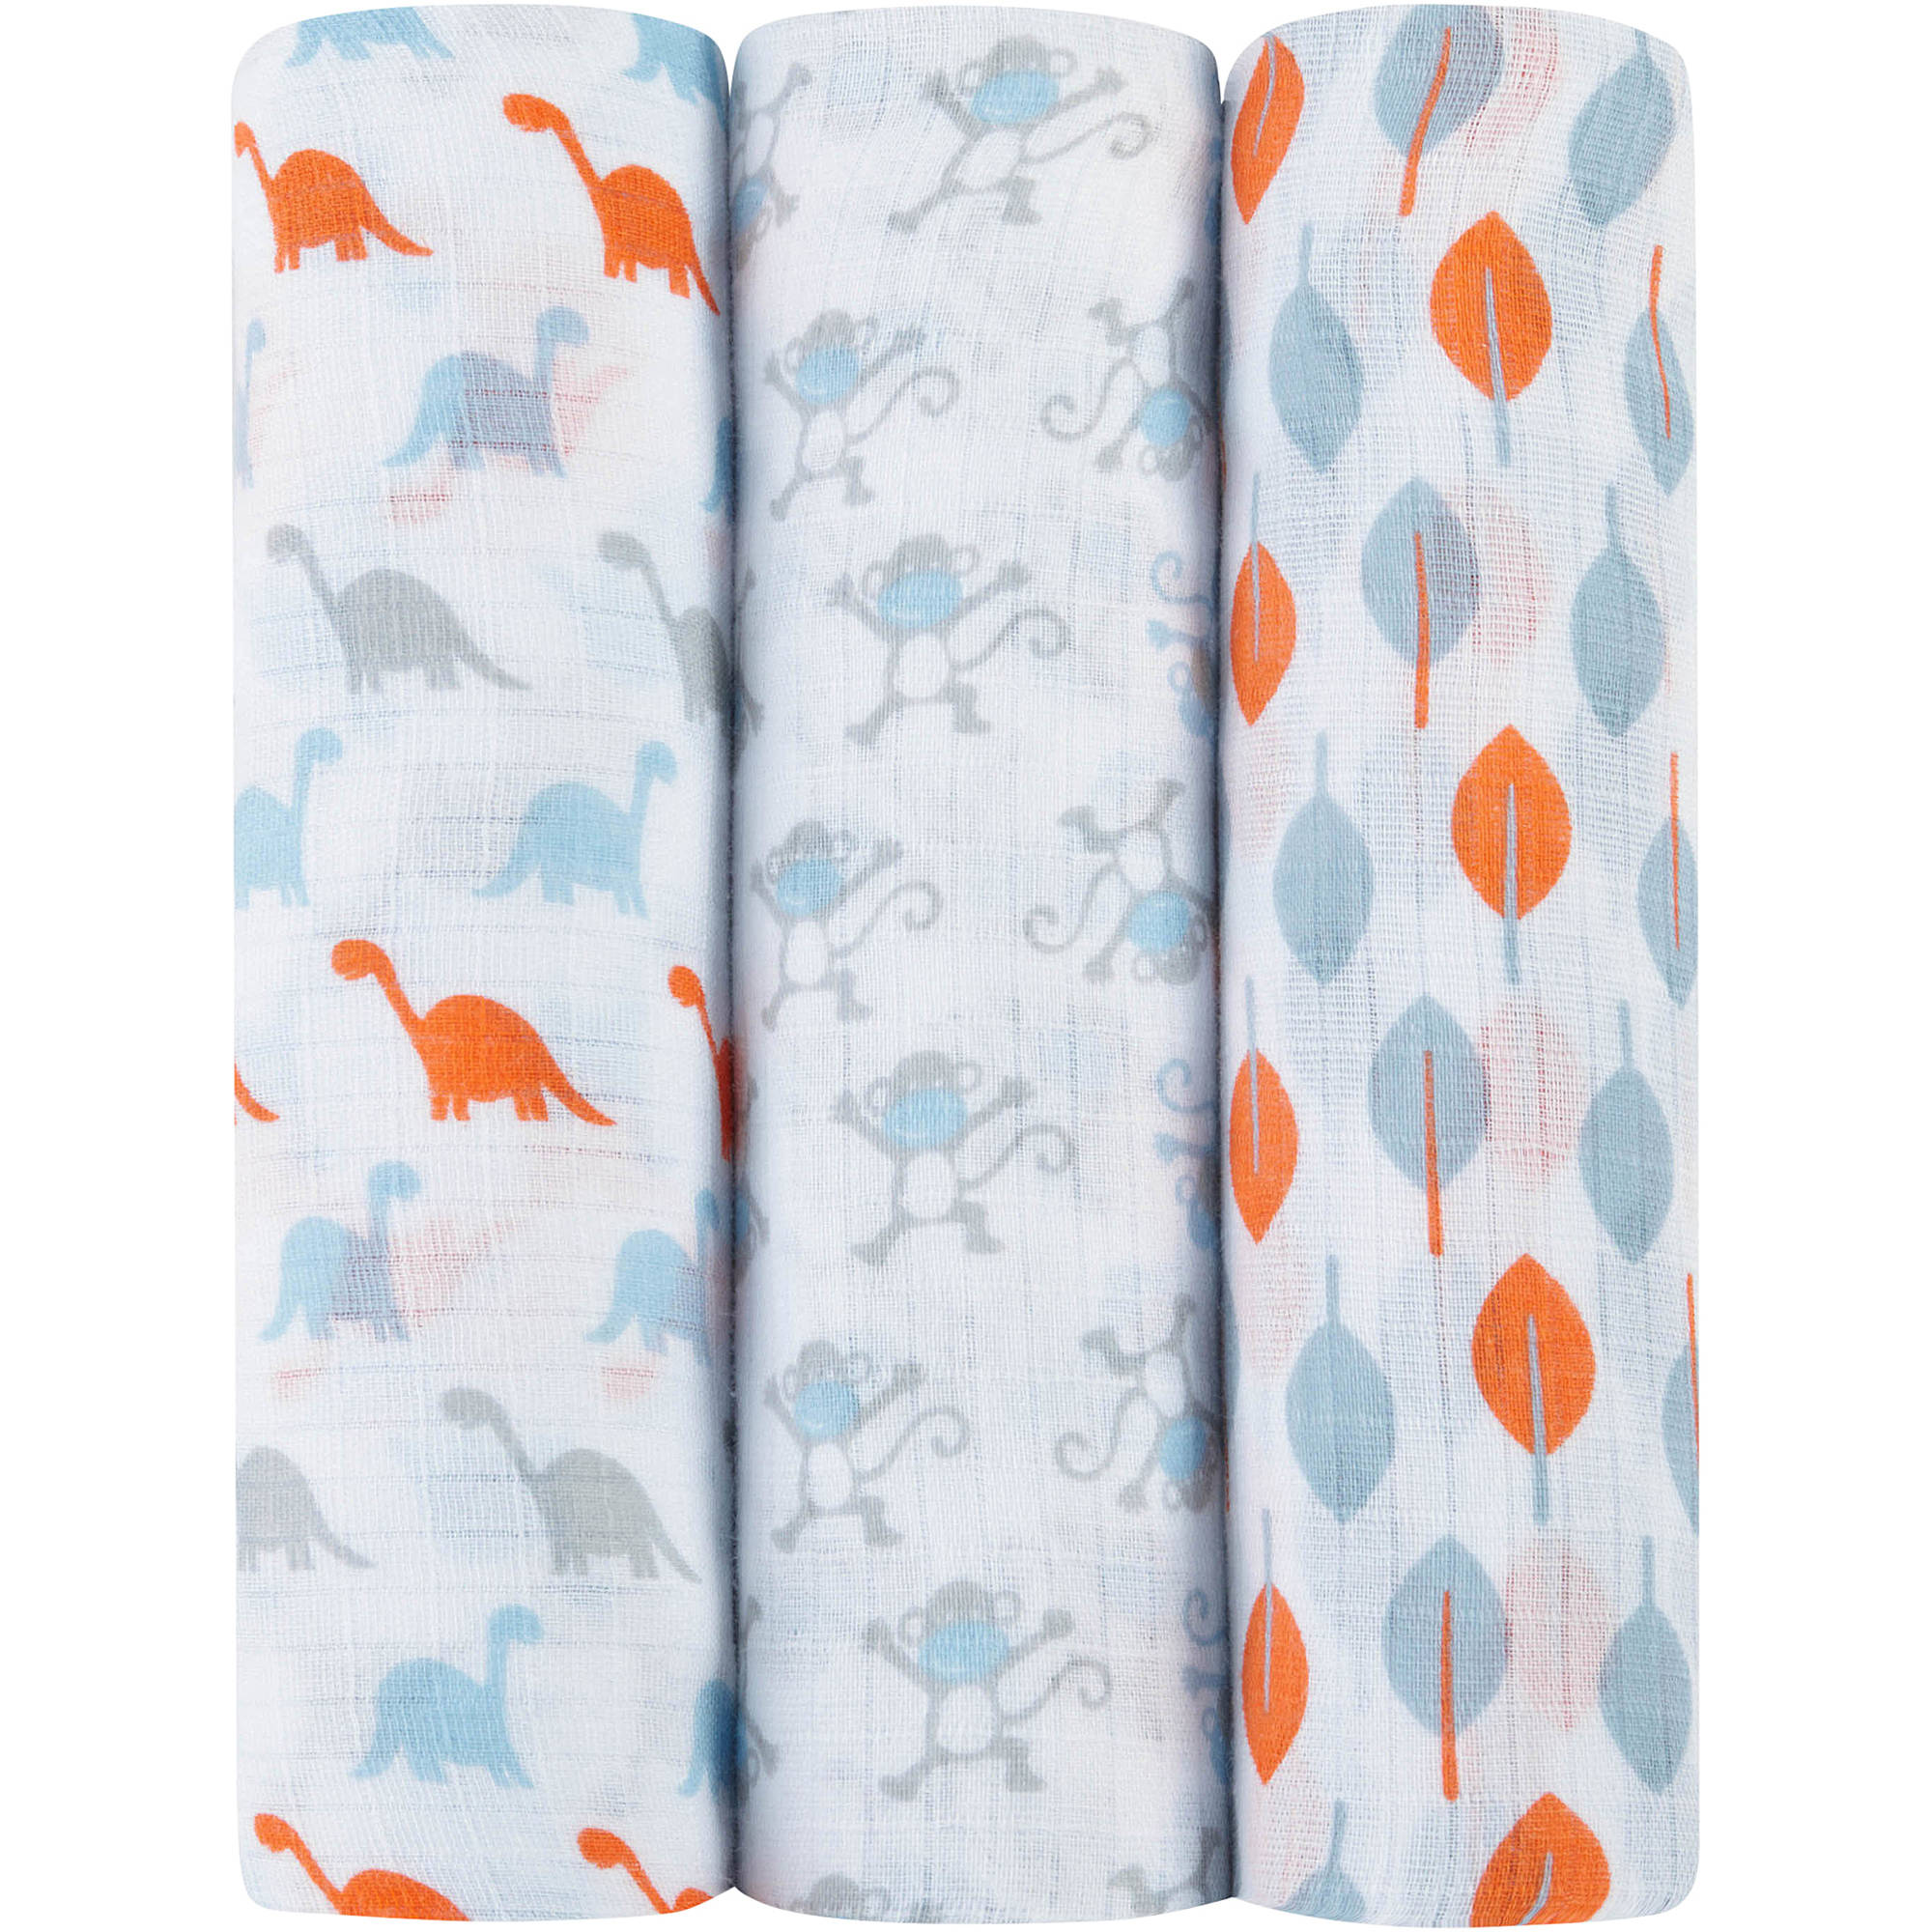 ideal baby by the makers of aden   anais Muslin Swaddles, 3pk, Cheeky Monkey